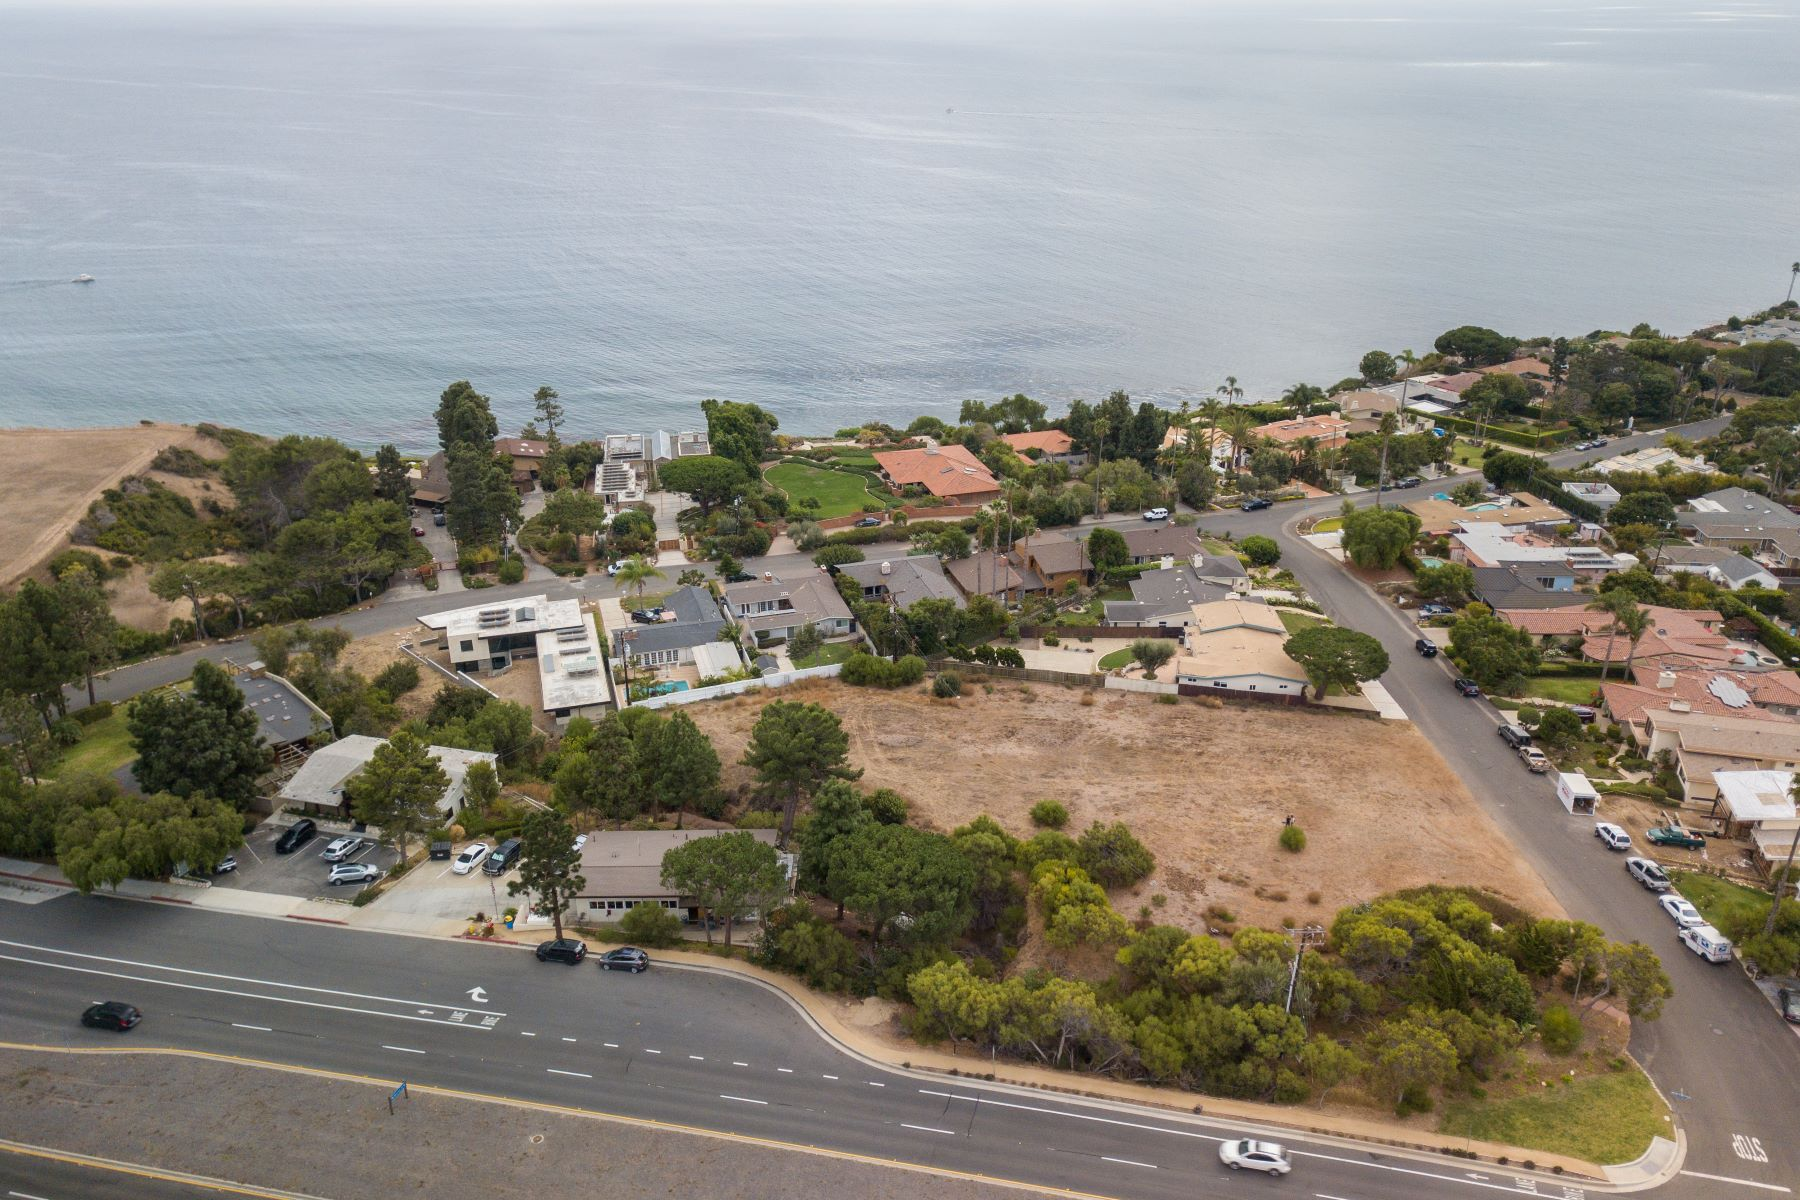 Land for Sale at 0 Clipeer Rd, Rancho Palos Verdes, CA 90274 0 Clipper Road Rancho Palos Verdes, California 90274 United States